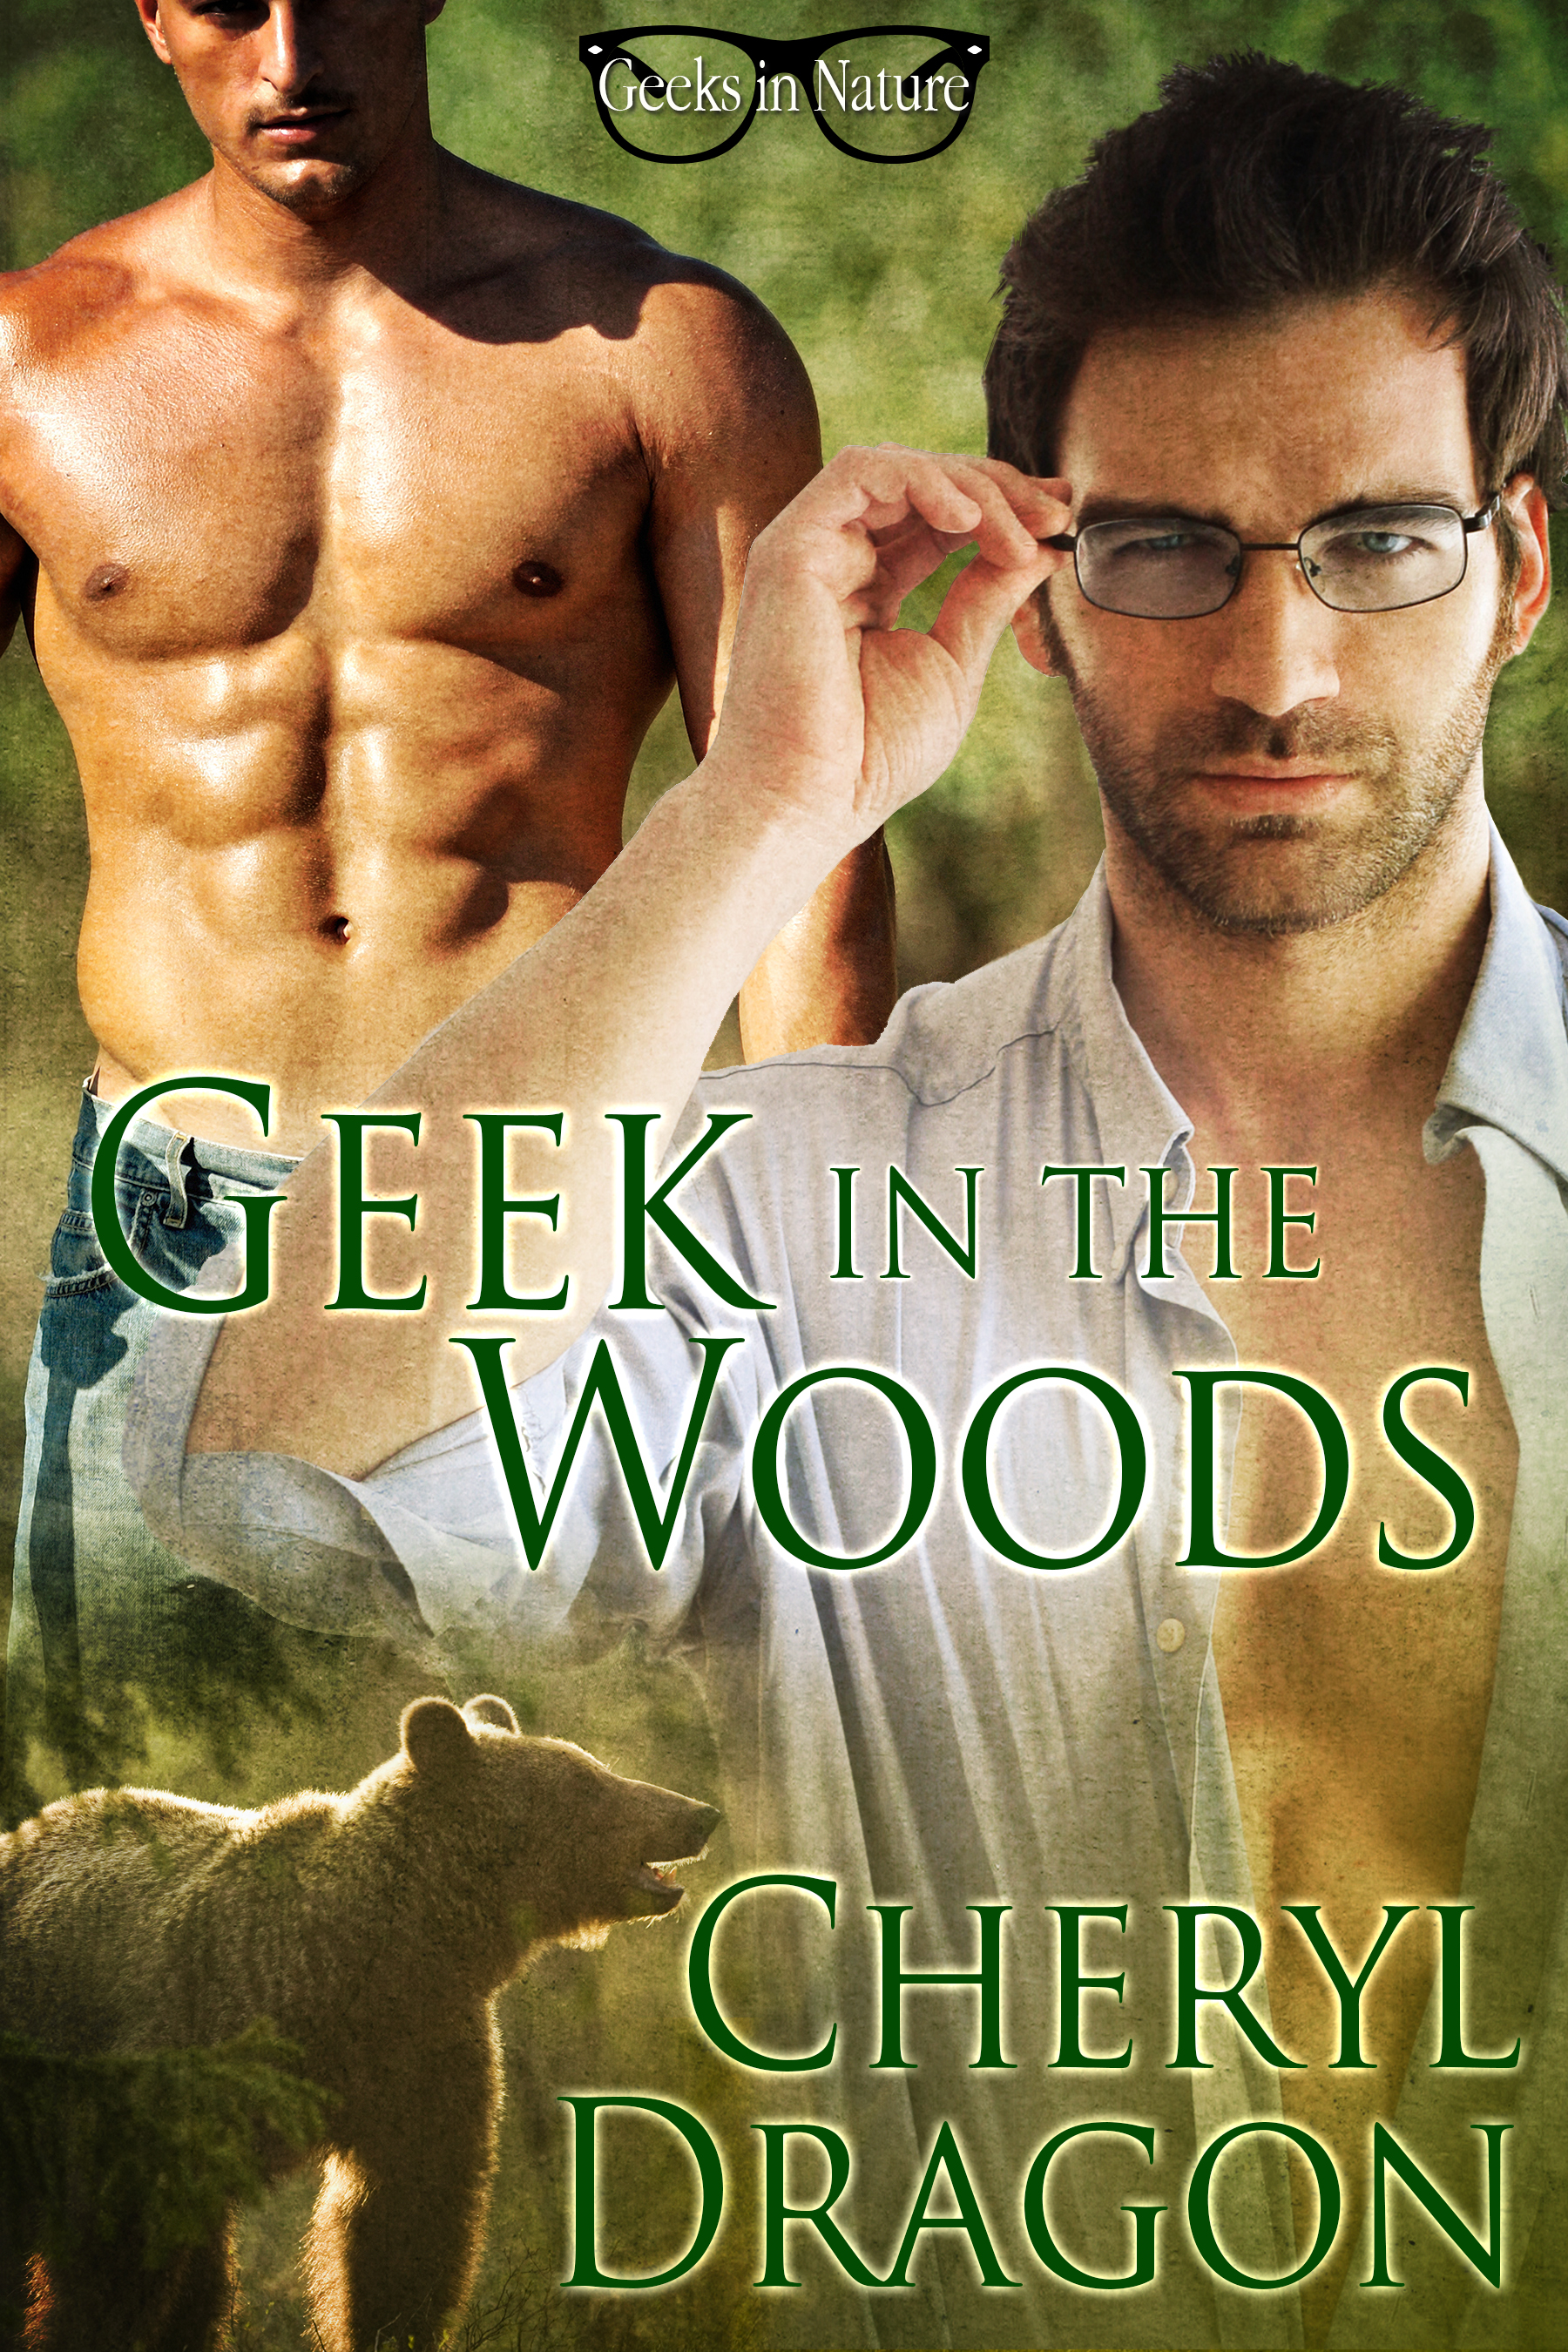 Guest Post and Giveaway: Geek in the Woods by Cheryl Dragon